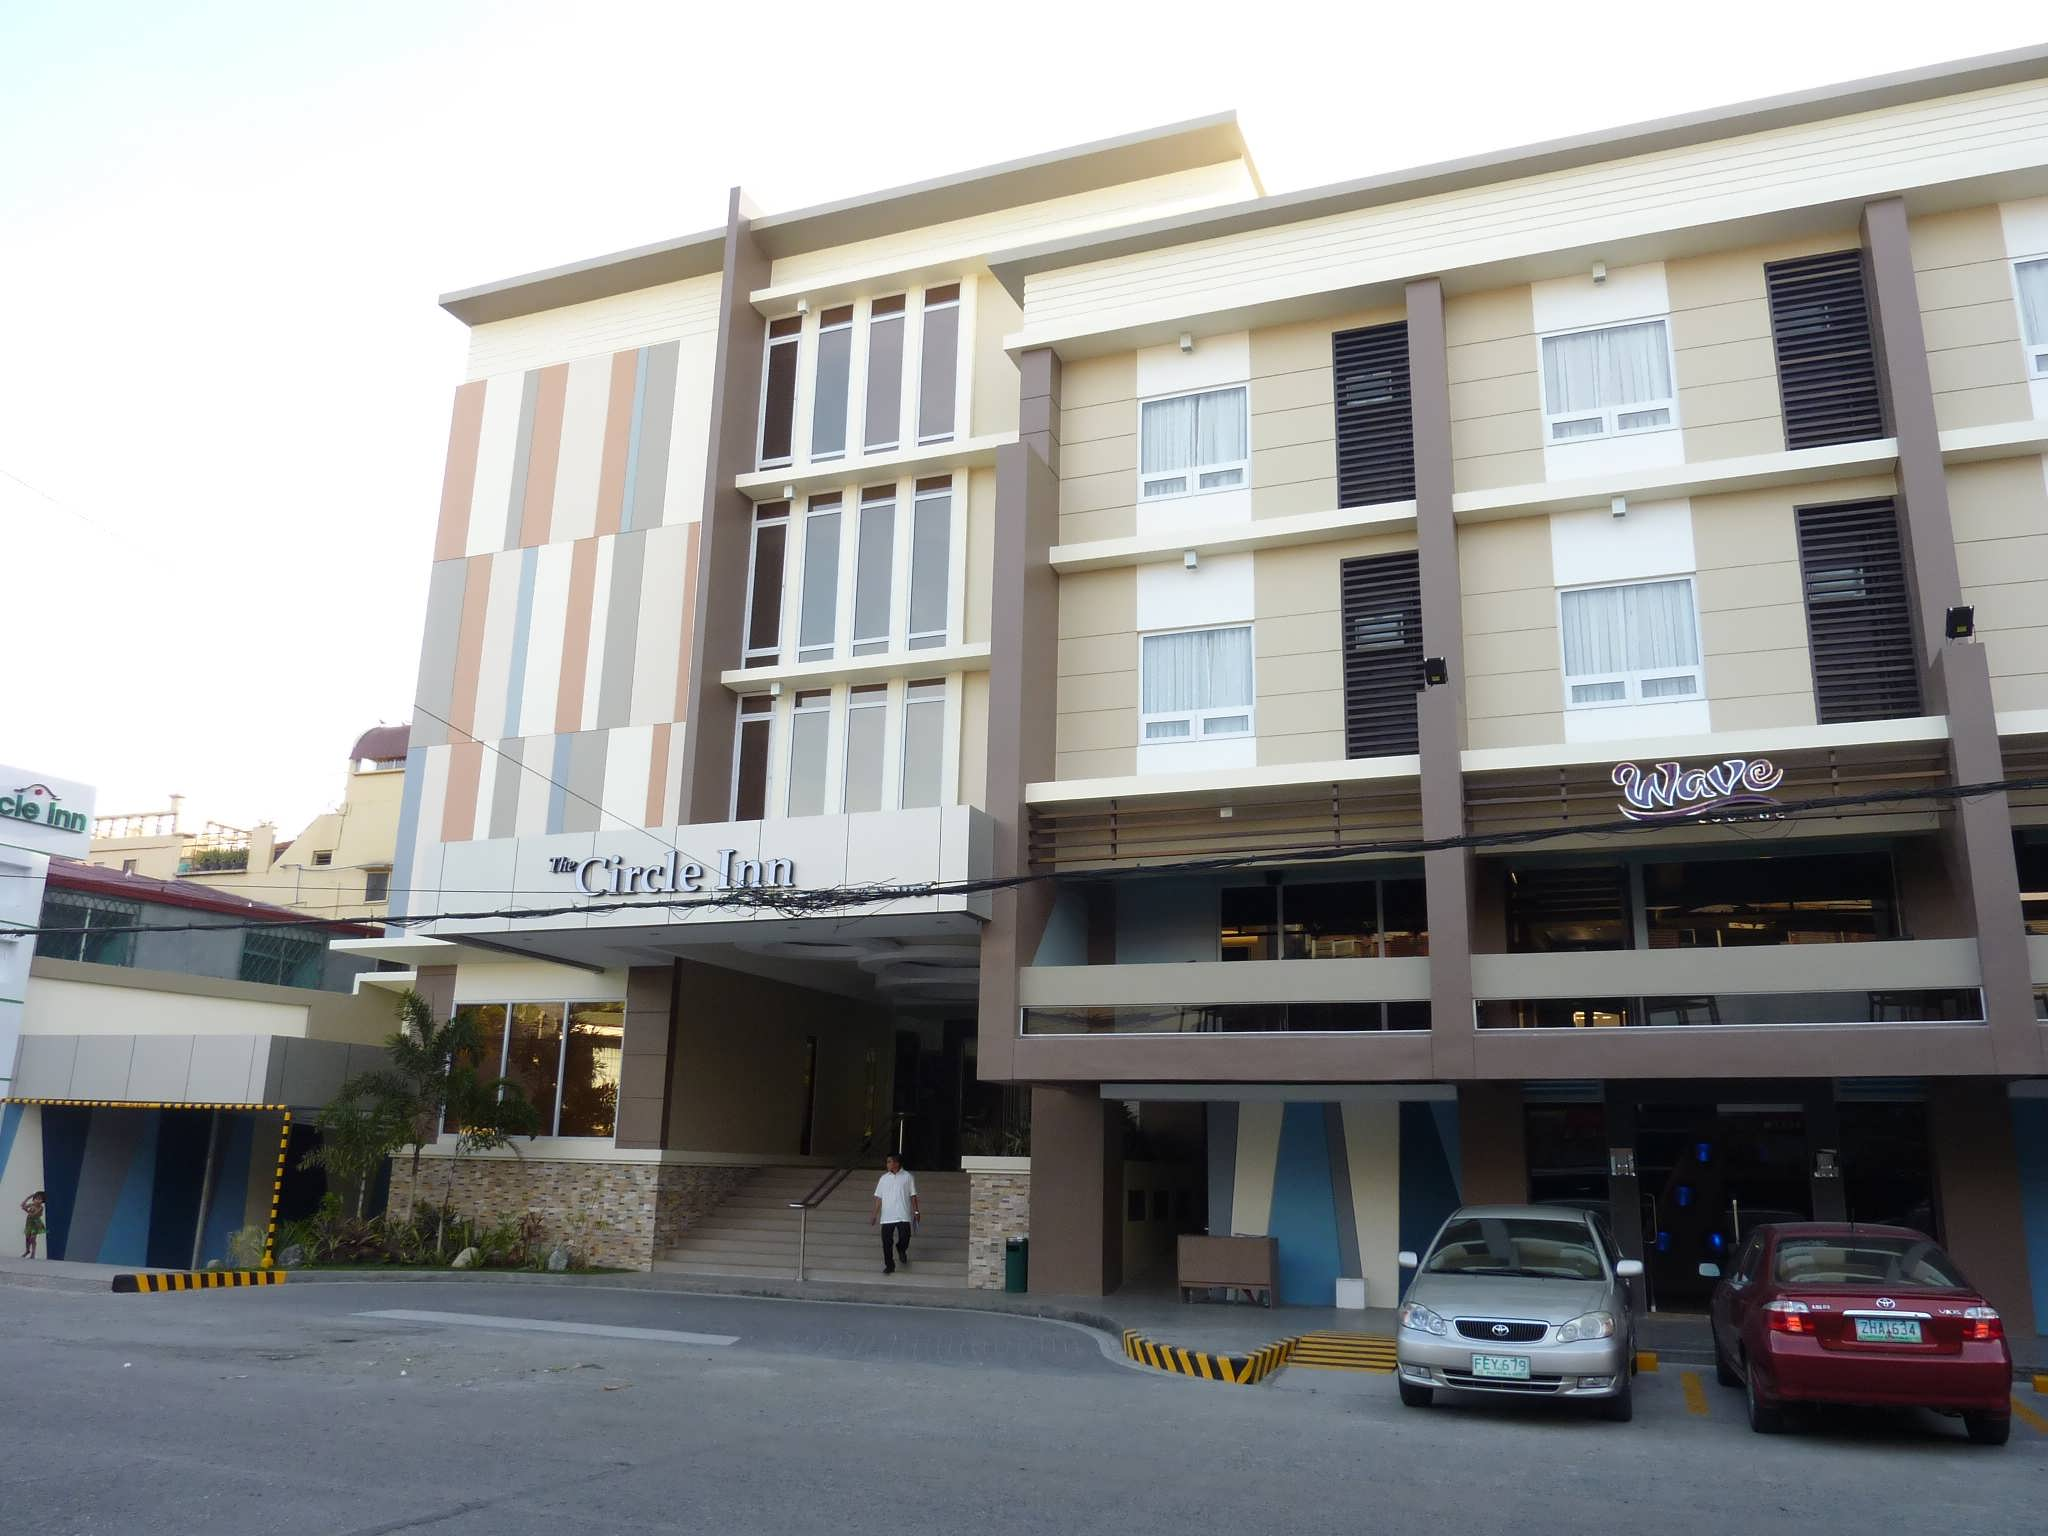 Iloilo City Hotel Amenities And Facilities Circle Inn Iloilo